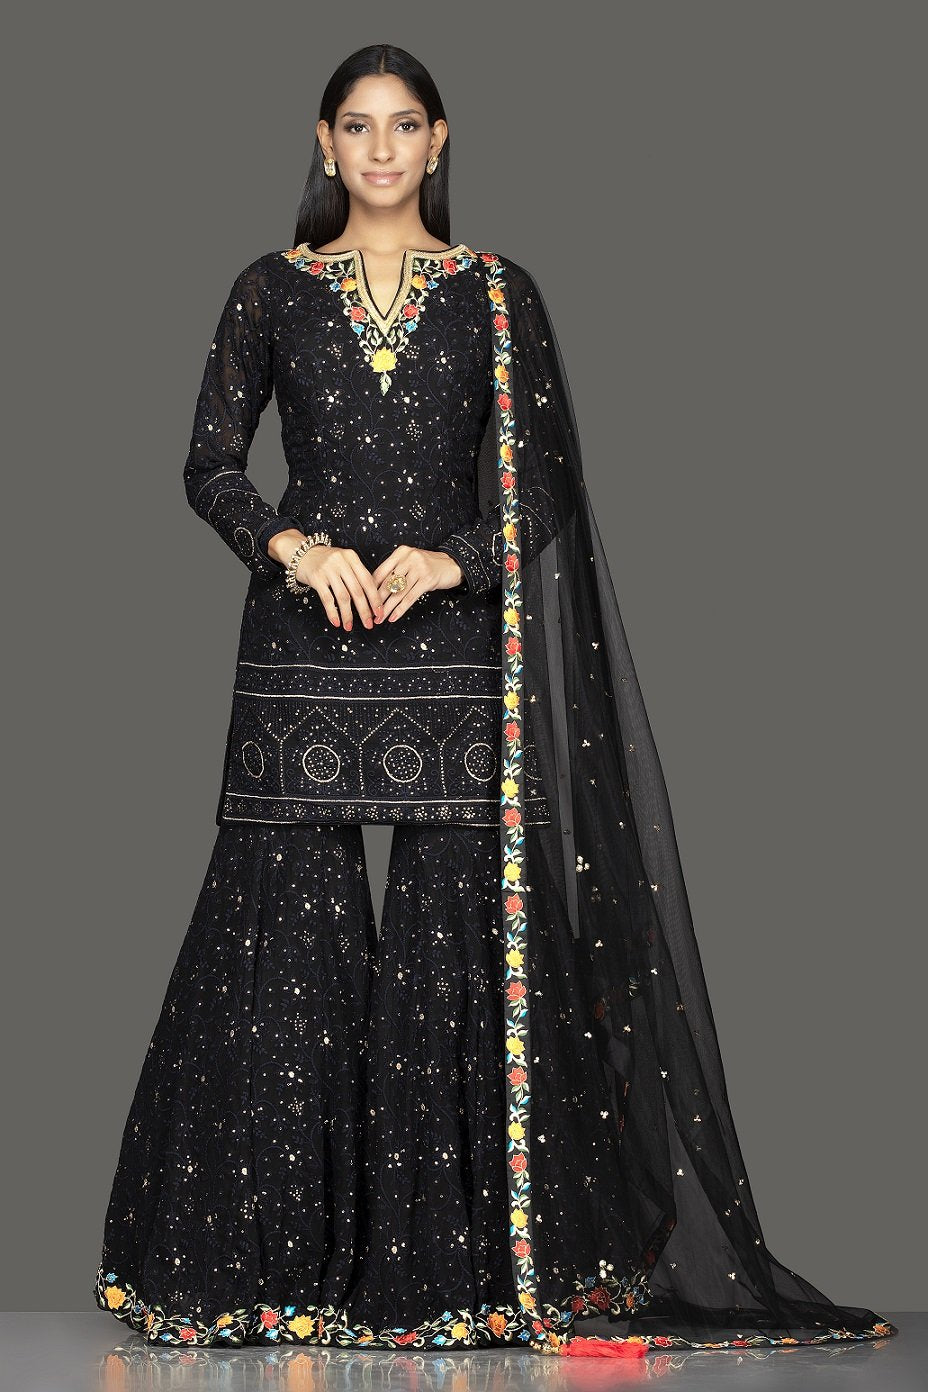 Buy stunning black georgette Lucknowi work garara suit online in USA with dupatta. Spread ethnic elegance on weddings and special occasions in splendid designer lehengas, Anarkali suits crafted with exquisite Indian craftsmanship from Pure Elegance Indian fashion store in USA.-full view